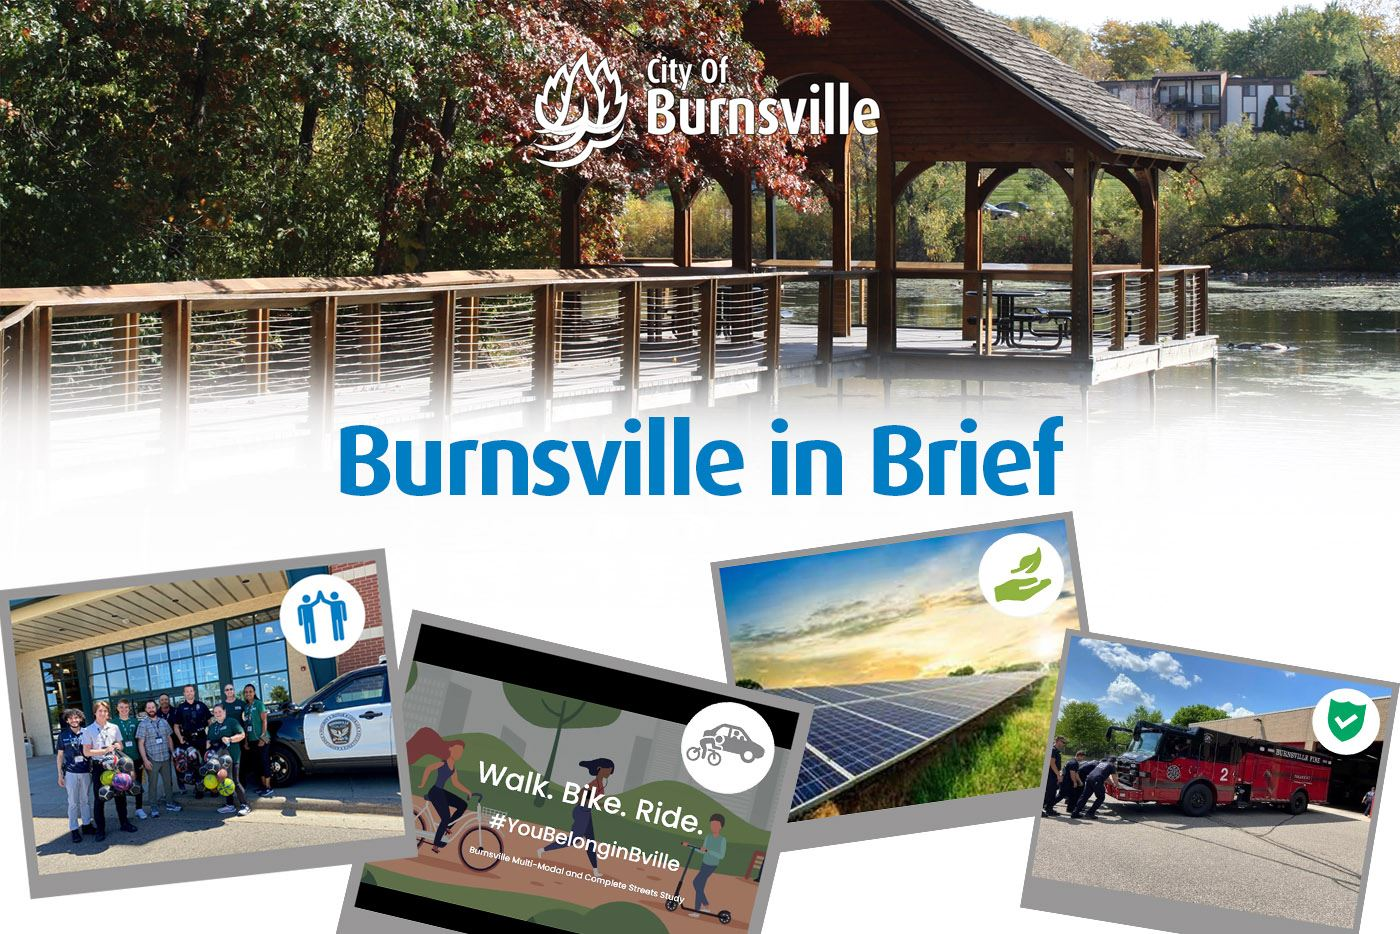 Burnsville in Brief headline with photographs of city vehicles, Mayor and buildings